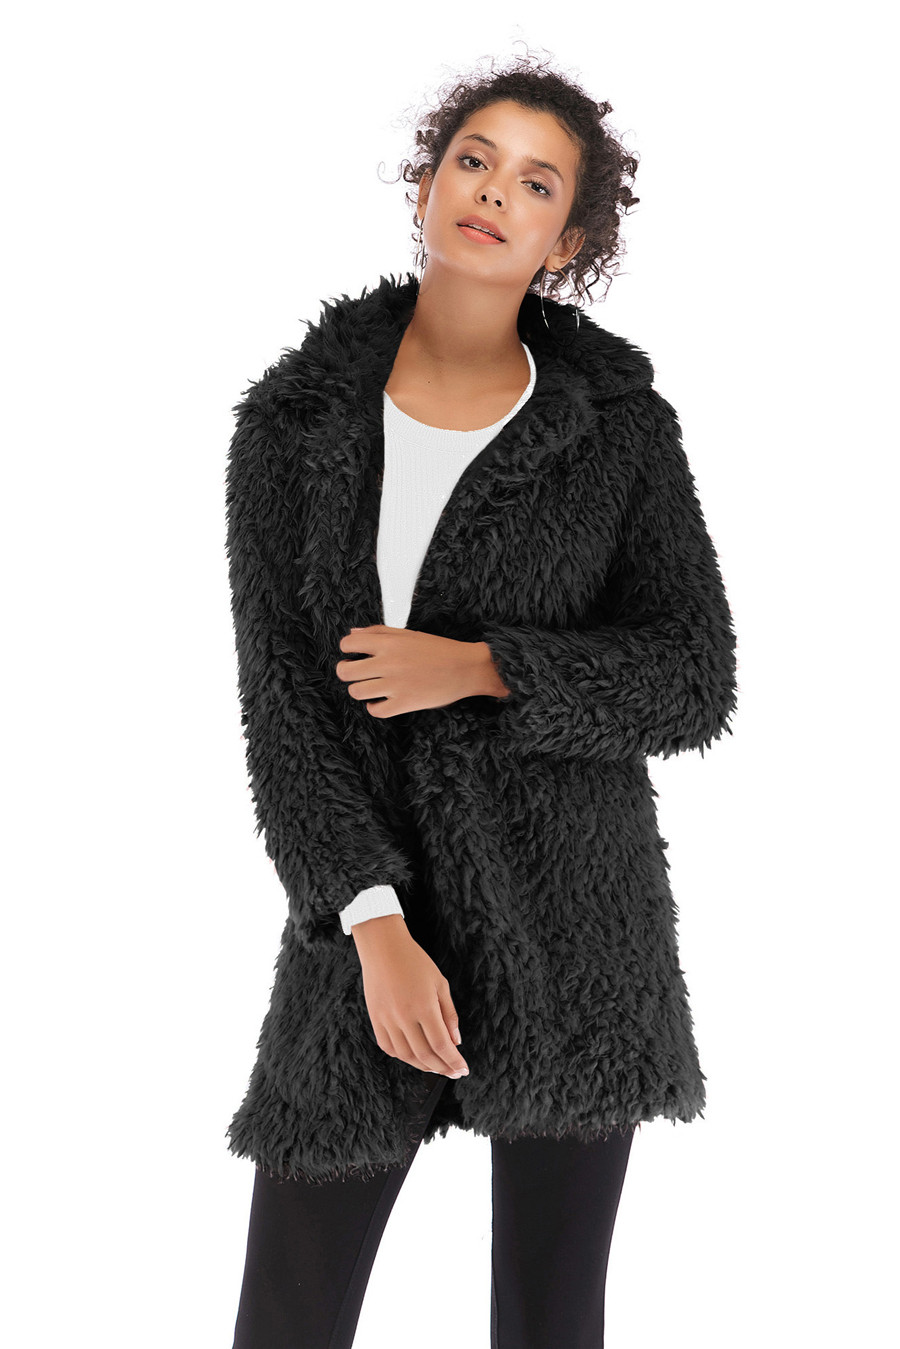 Gladiolus 2018 Women Autumn Winter Coat Turn-Down Collar Long Sleeve Covered Button Long Warm Shaggy Faux Fur Coat Women Jackets (22)